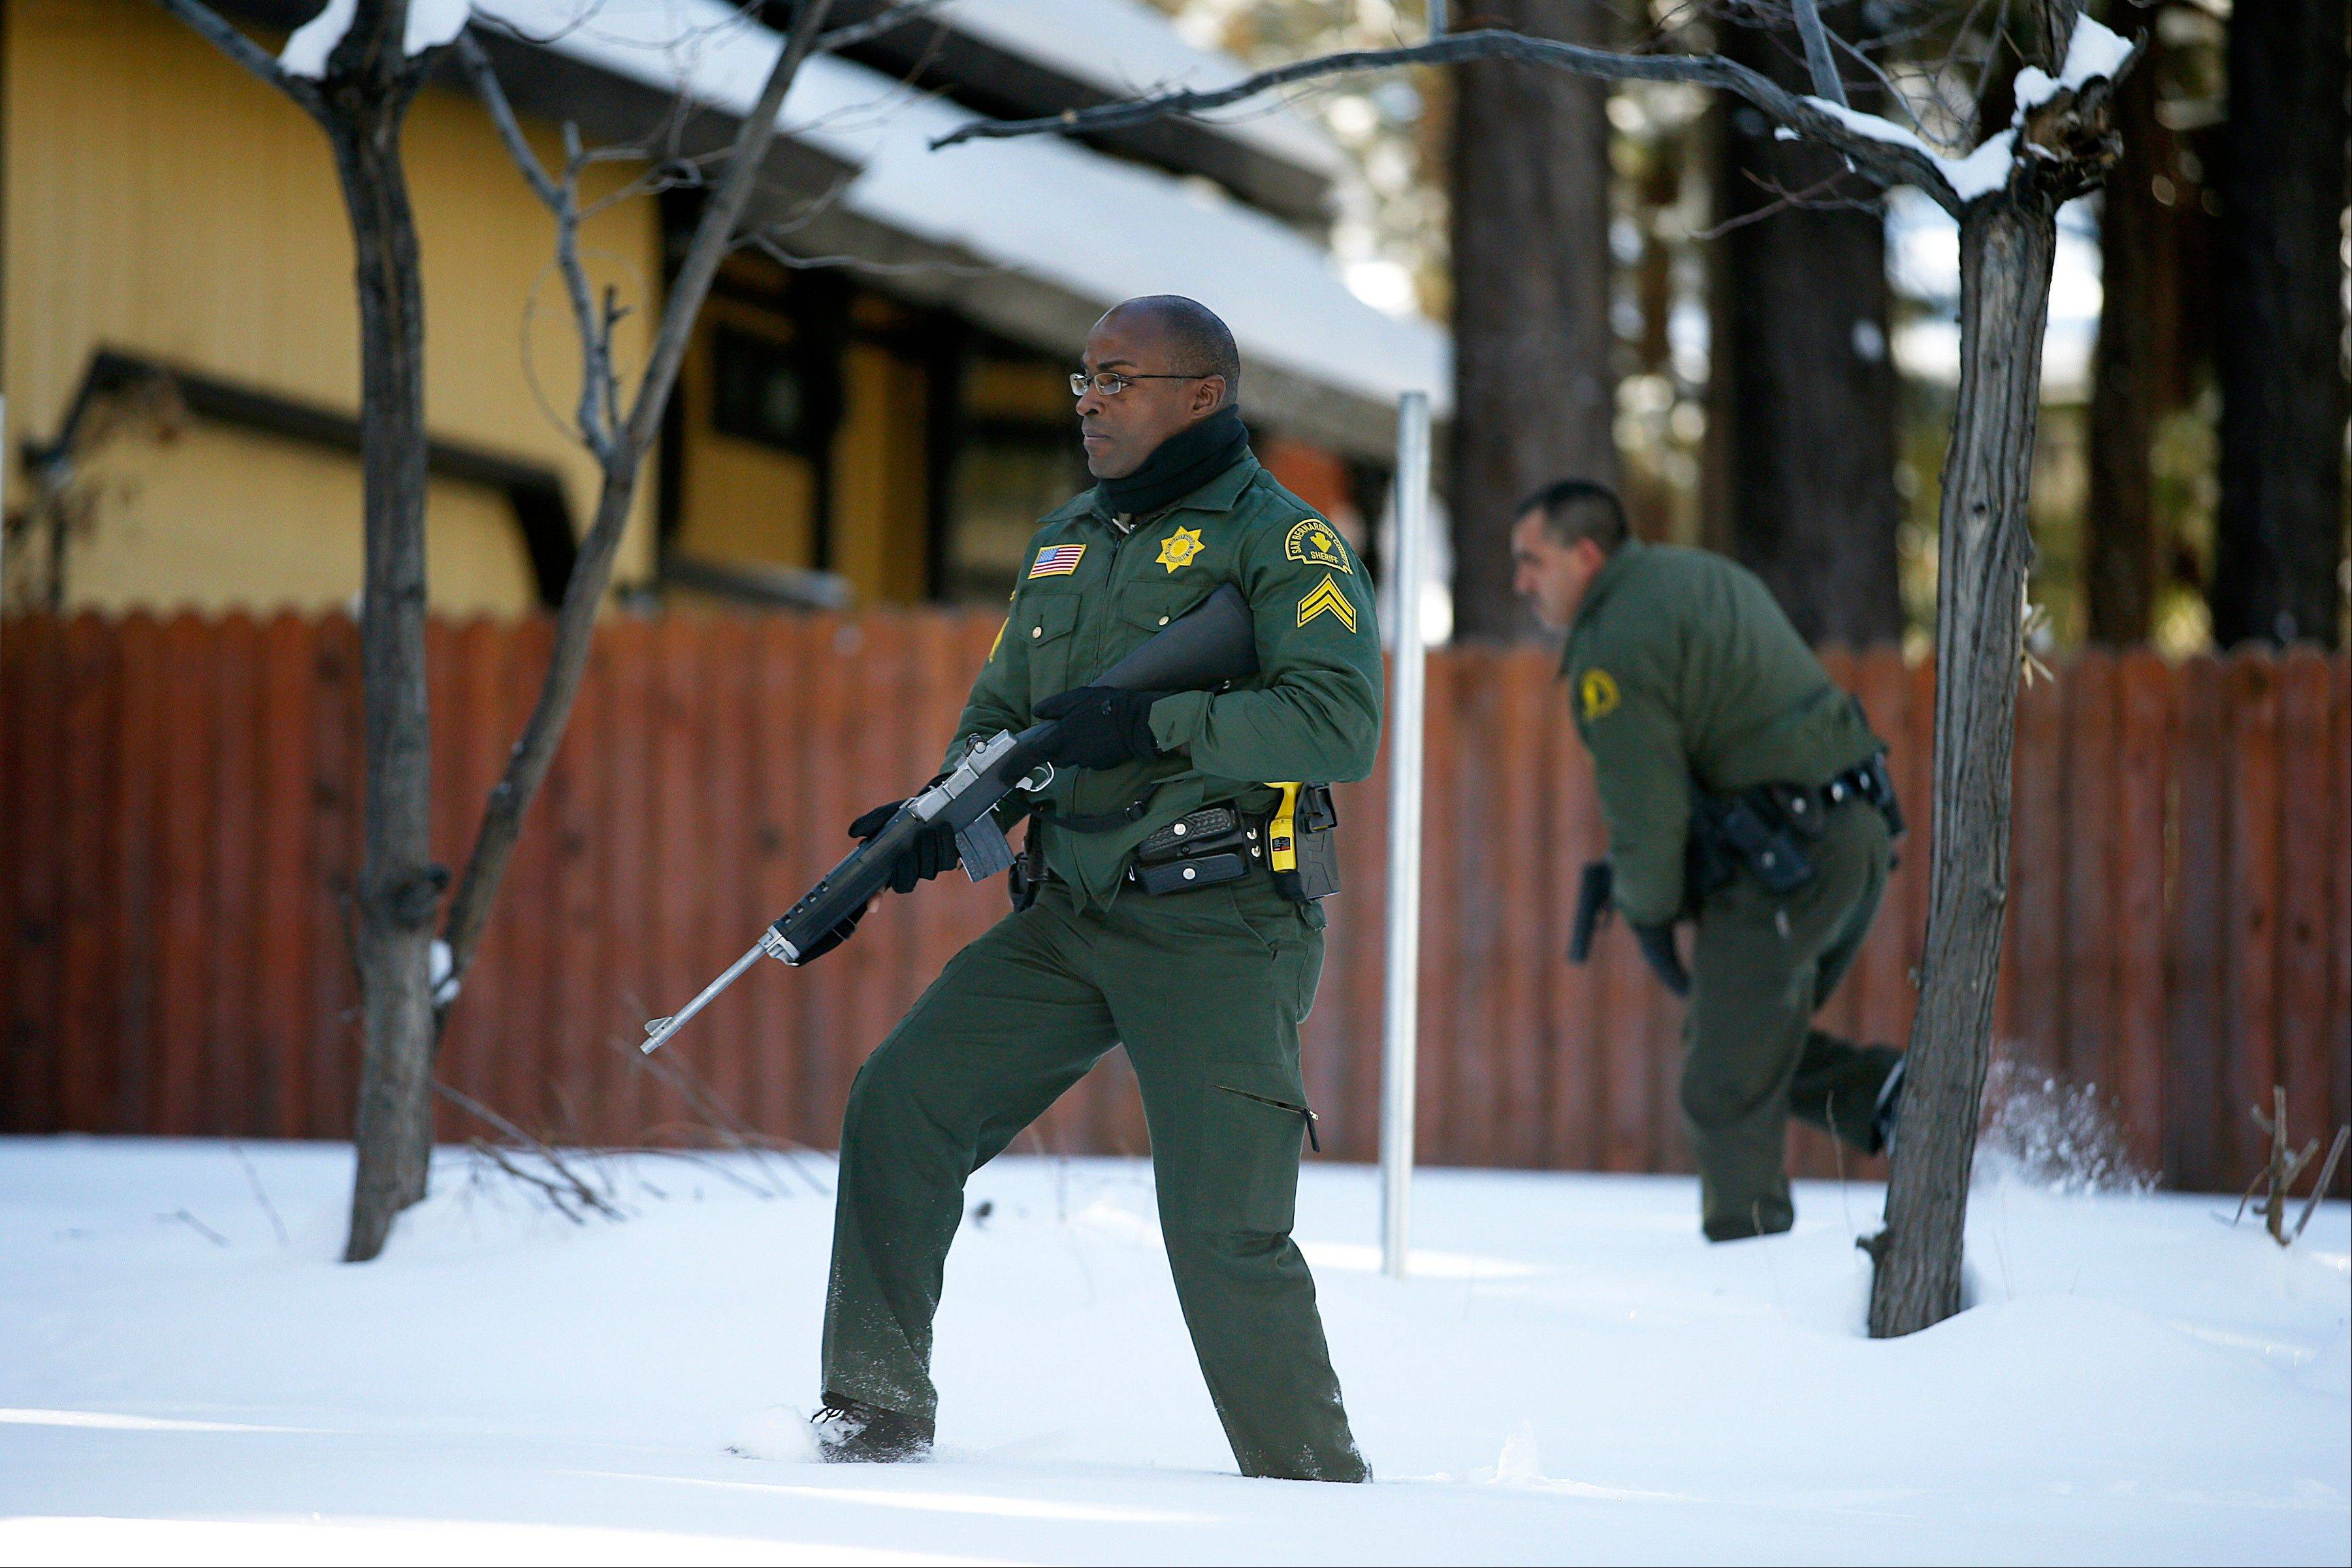 San Bernardino County sheriff's officers Ken Owens, center, and Bernabe Ortiz search for former Los Angeles police officer Christopher Dorner on Sunday in Big Bear Lake, Calif.